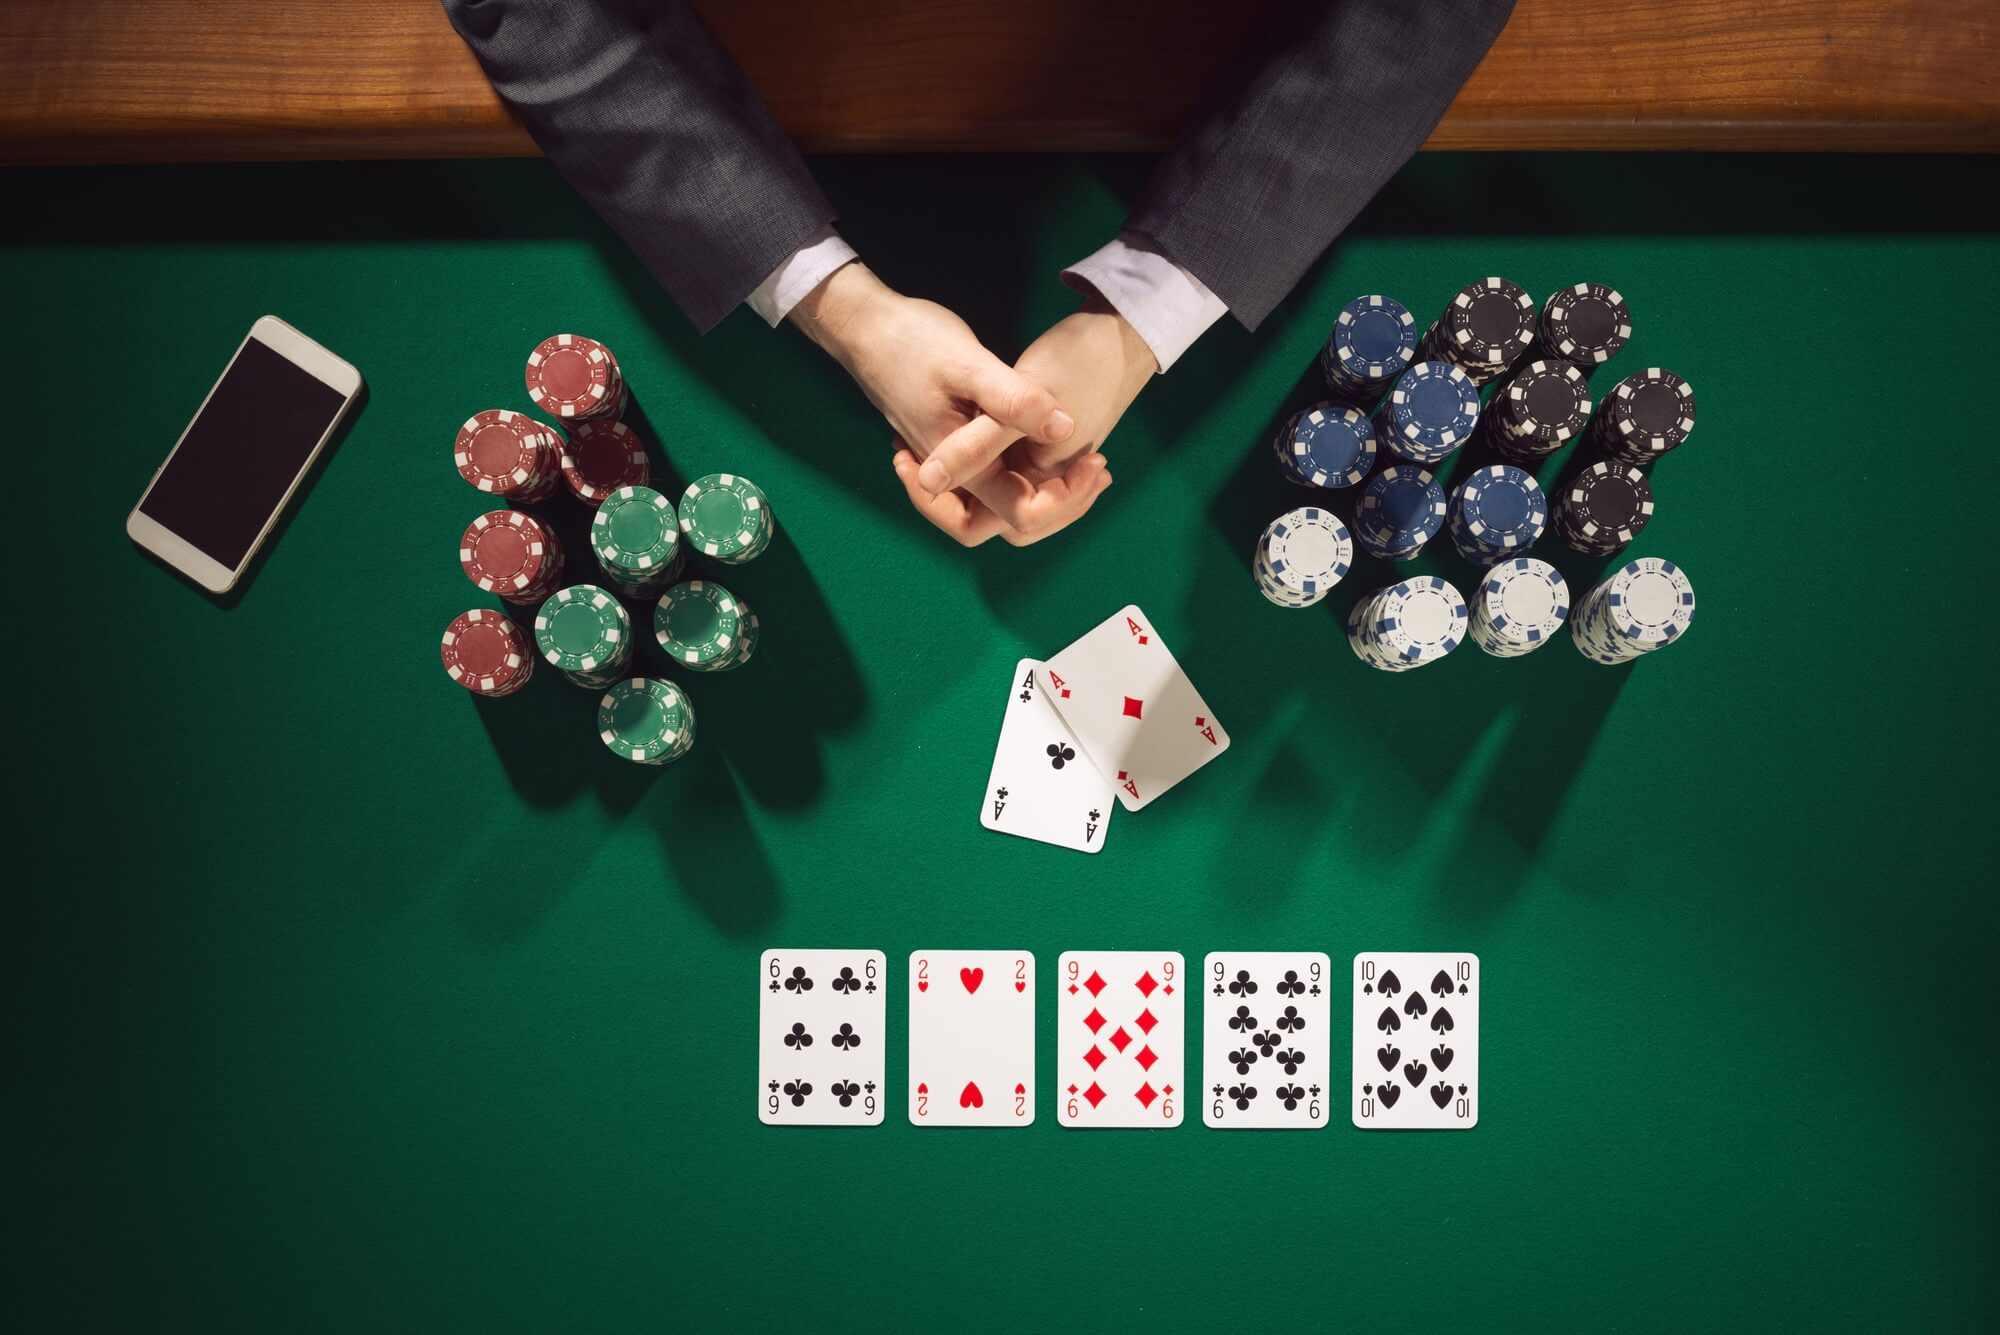 Tips for registering for the QQ Poker Indonesia site